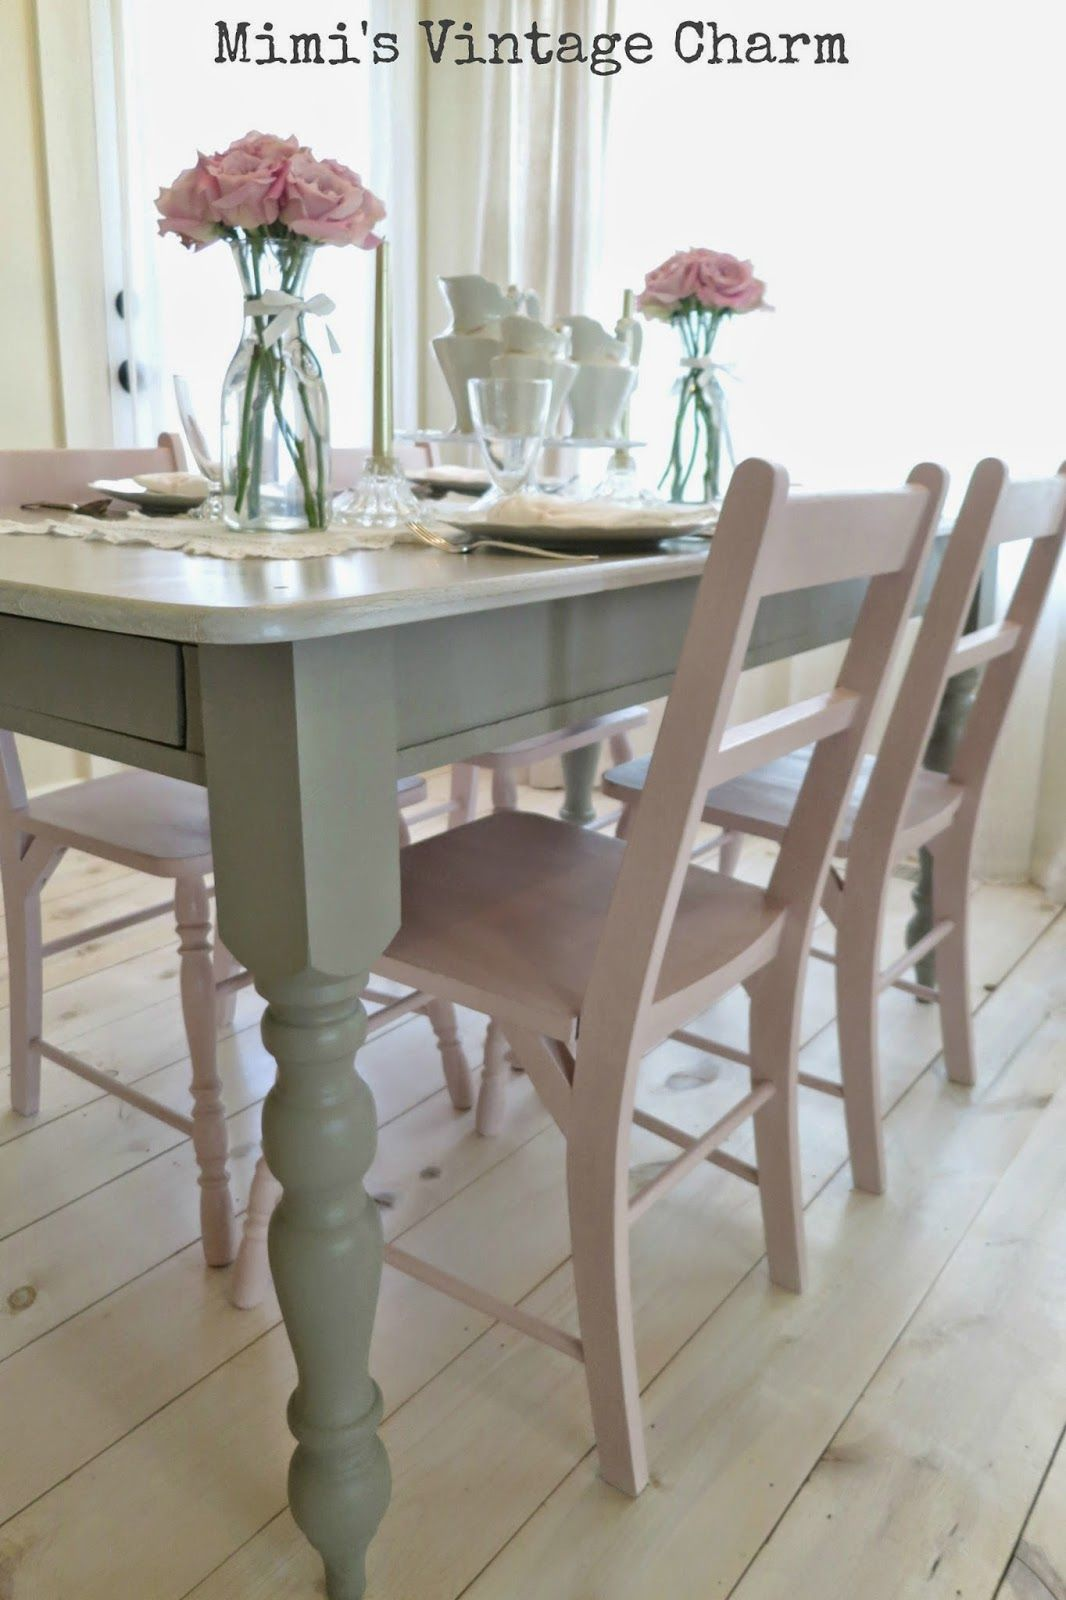 Vintage Dining Room Chairs Hanging Chair Hammock South Africa Antoinette French Linen Table Chalk Paint By